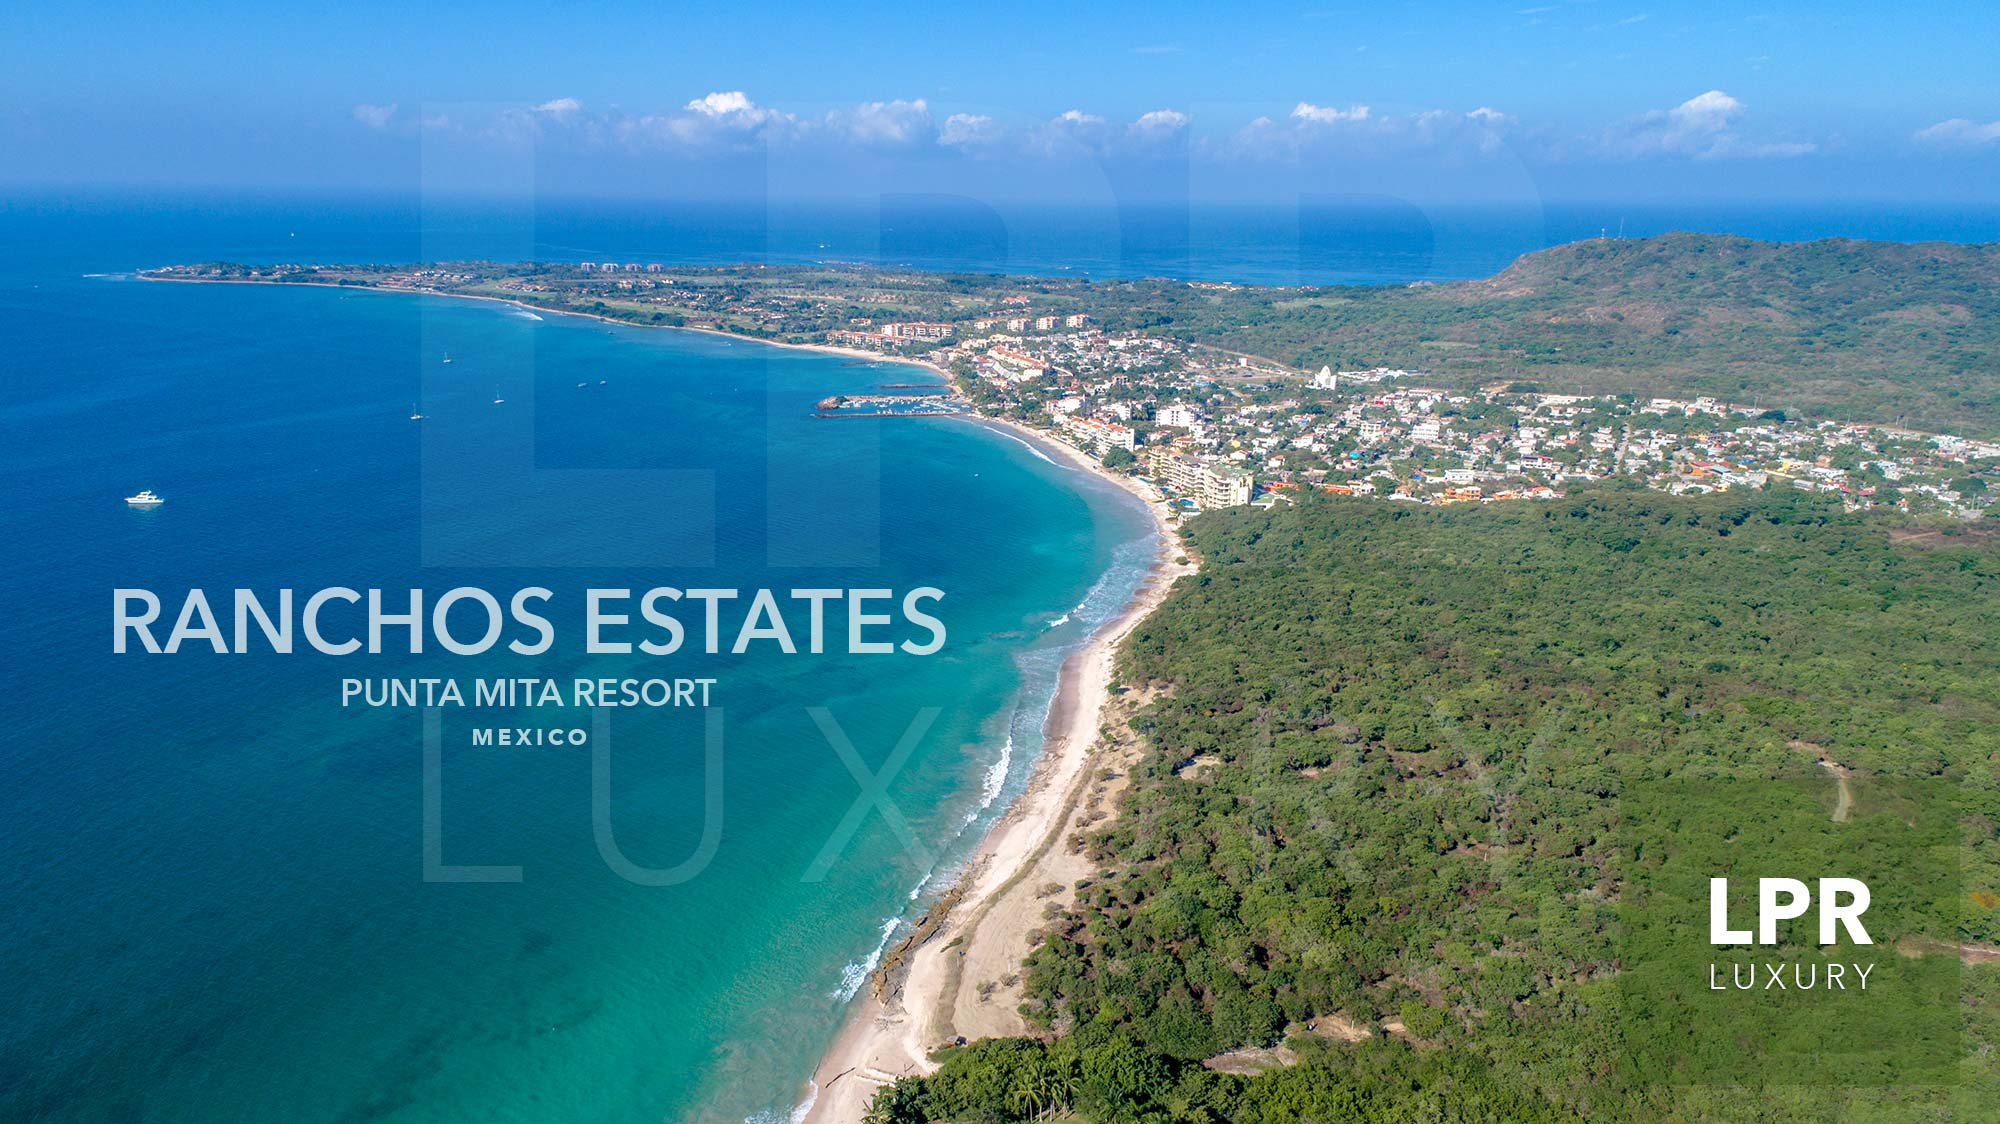 Ranchos Estates at the ultra exclusive Punta Mita Resort - Riviera Nayarit, Mexico